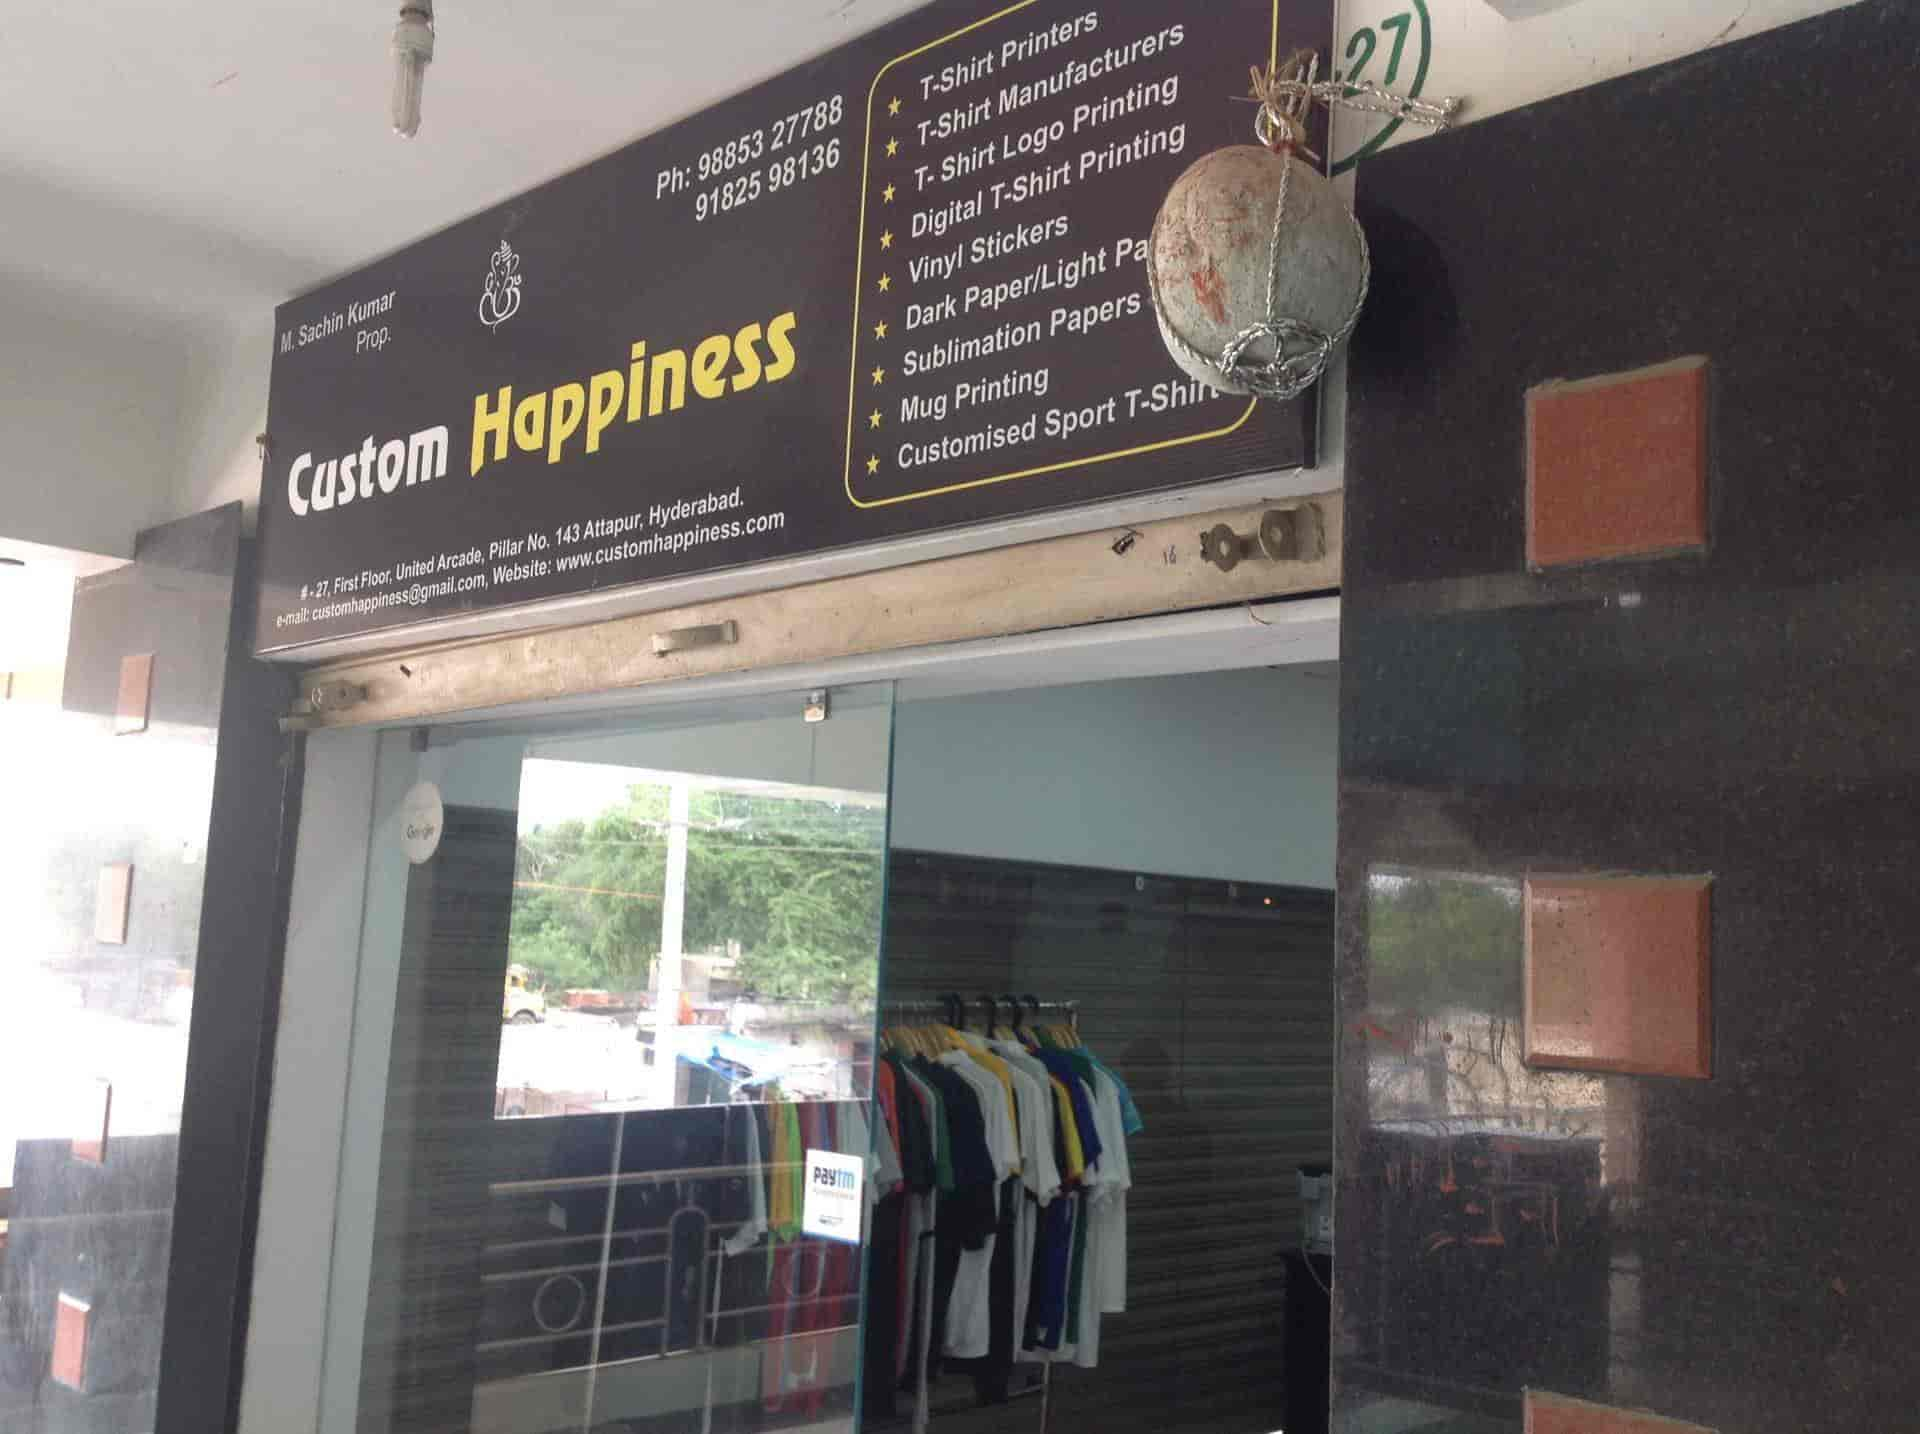 Custom happiness attapur t shirt printers in hyderabad justdial